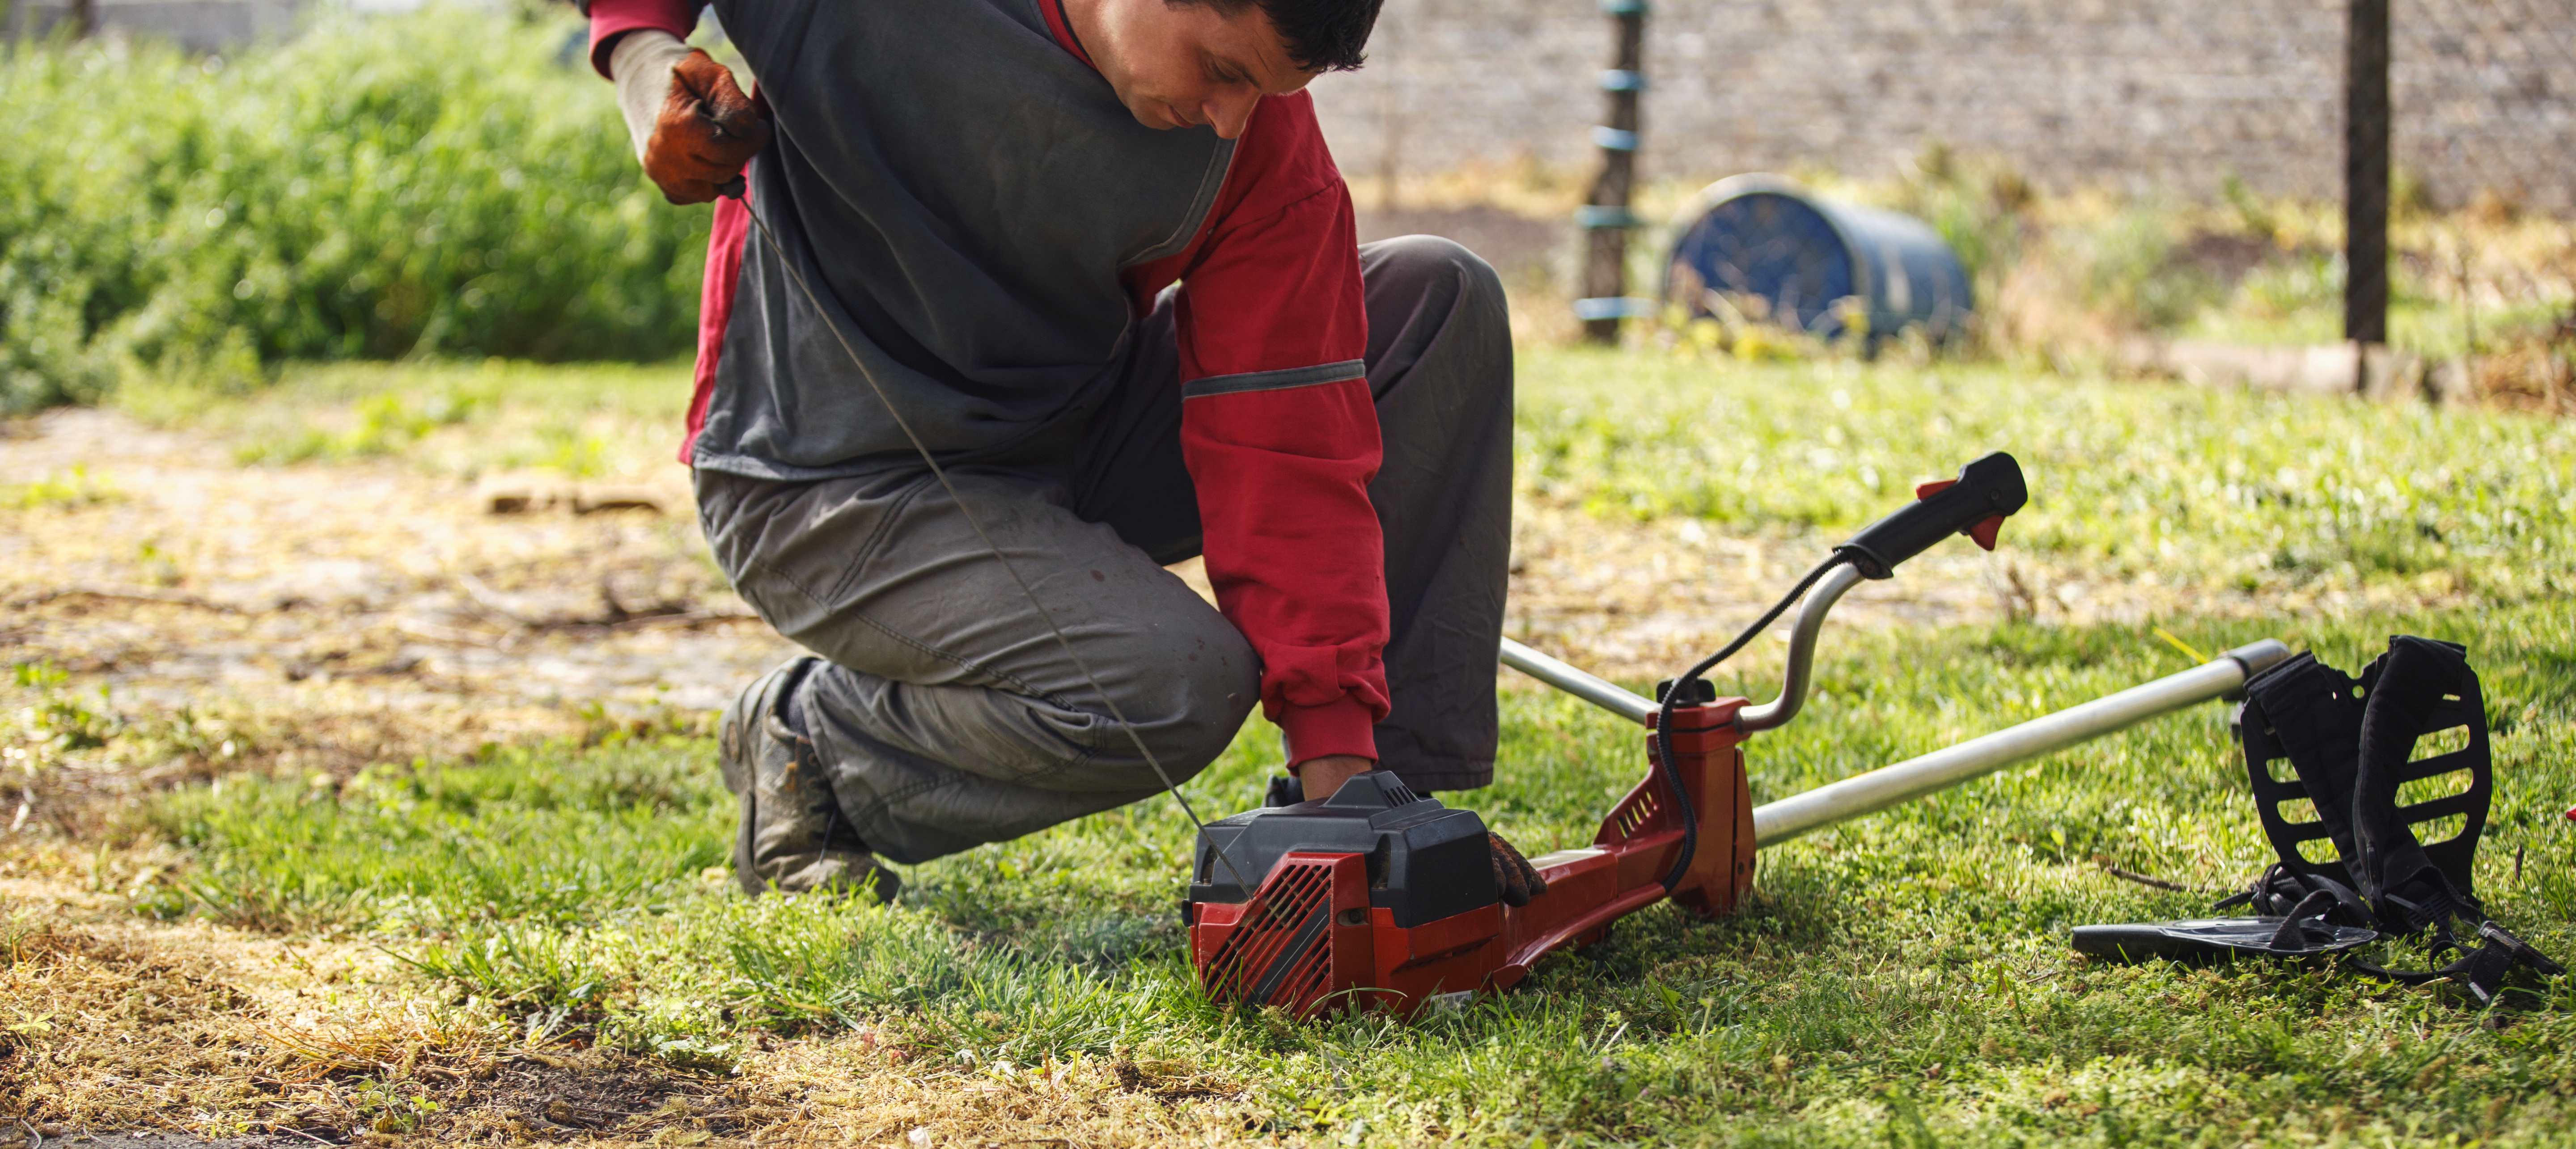 How to Replace Lines in Ryobi String Trimmers | Home Guides